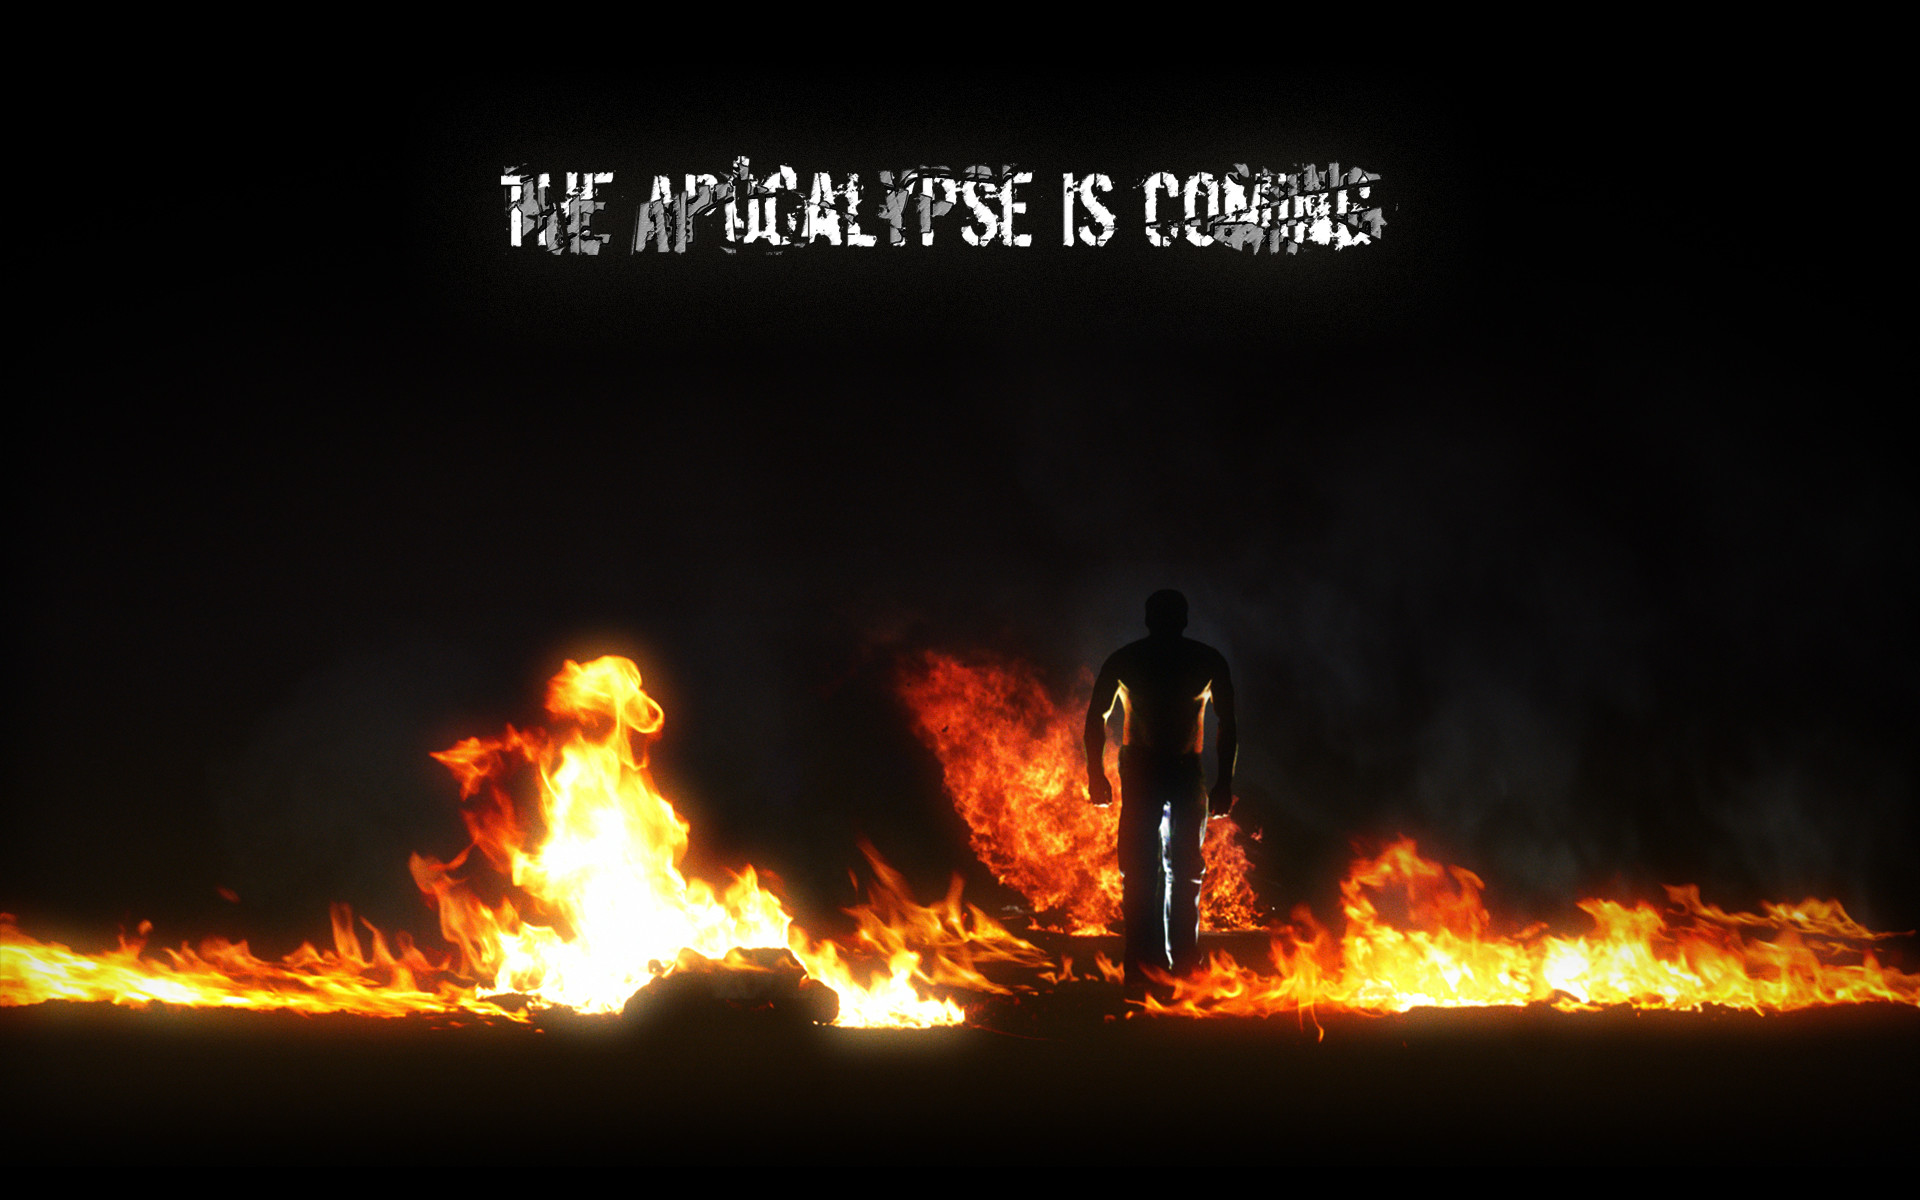 1920x1200 Zombie Apocalypse Wallpaper 1 by Soulburned Zombie Apocalypse Wallpaper 1  by Soulburned